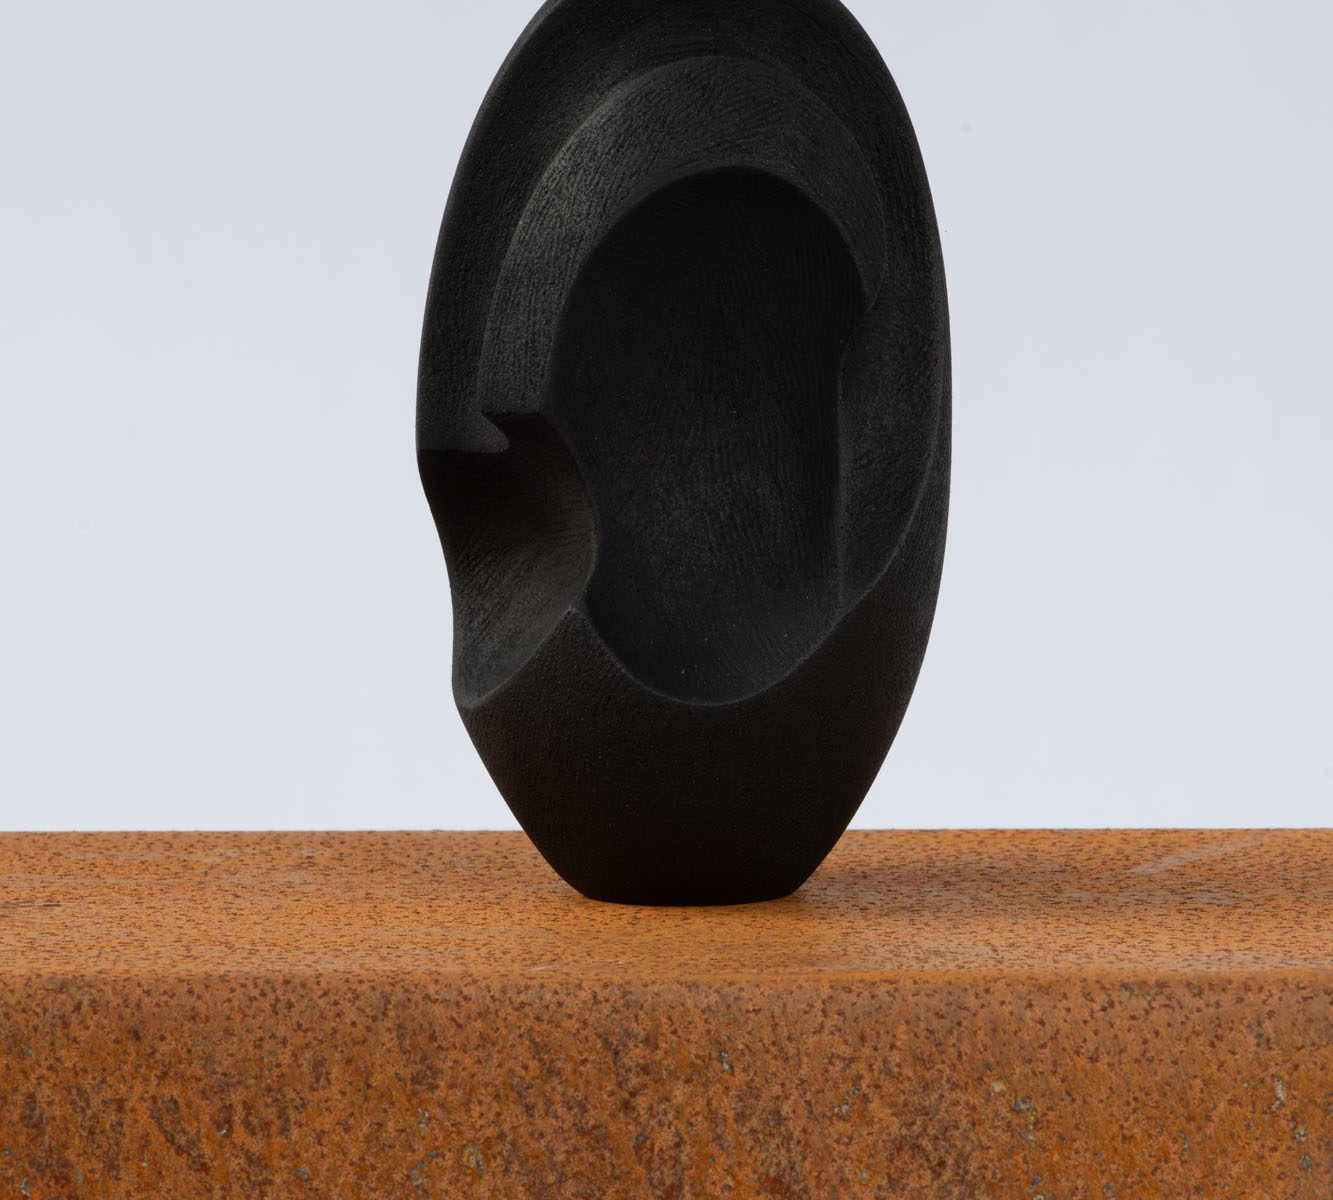 Small Black Vertical Form - Oct 2020 #1